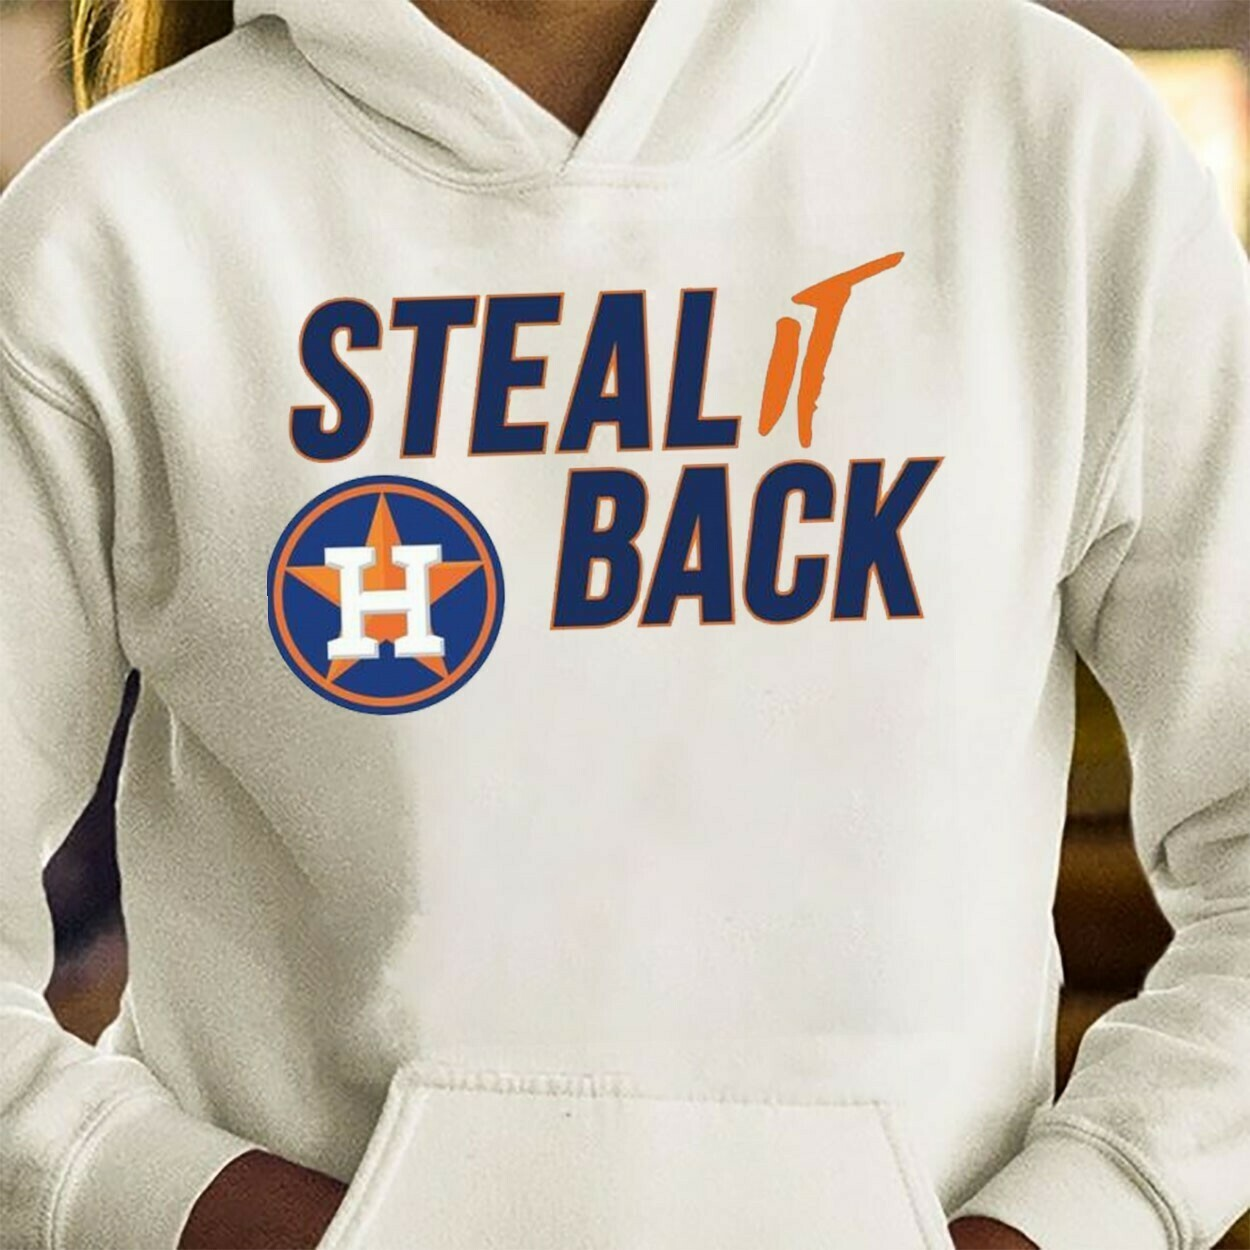 Houston Astros Steal It Back Baseball Sign Stealing scandal Hate Us Astros Replica  T-Shirt Hoodie Sweatshirt Sweater Tee Kids Youth Gifts Jolly Family Gifts